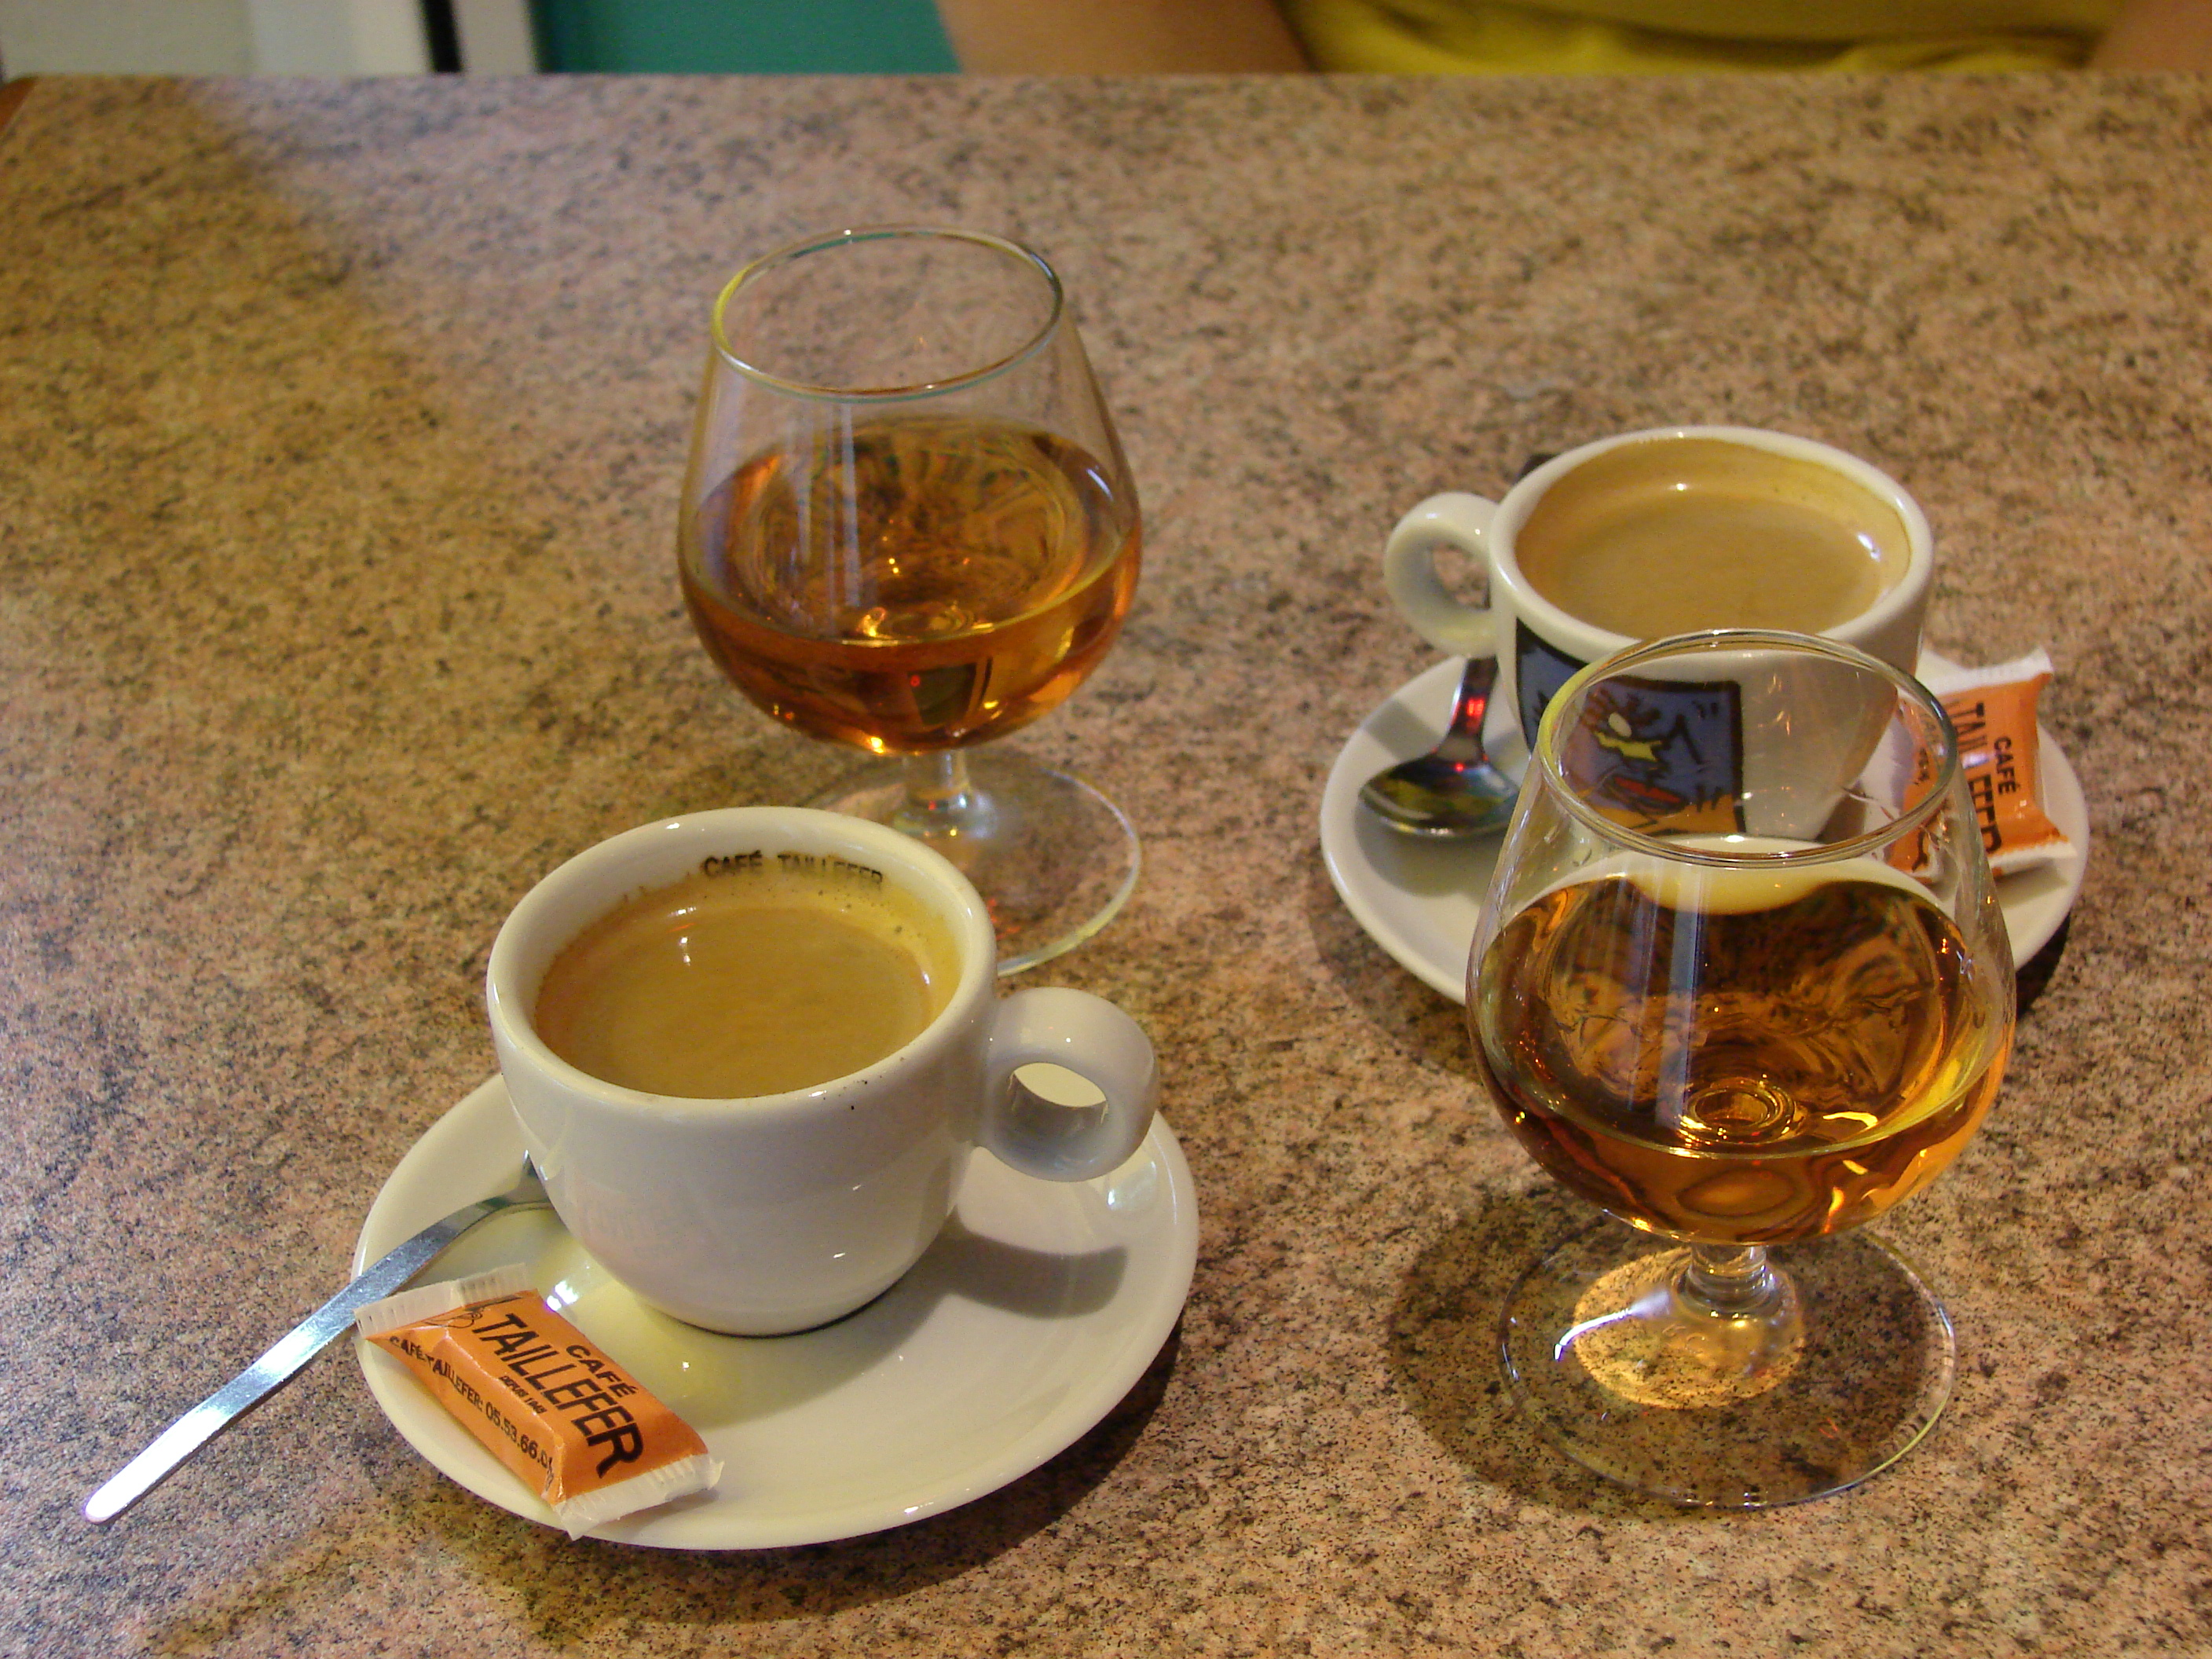 File:Coffee and Cognac, Agen, Aquitaine, France - panoramio.jpg